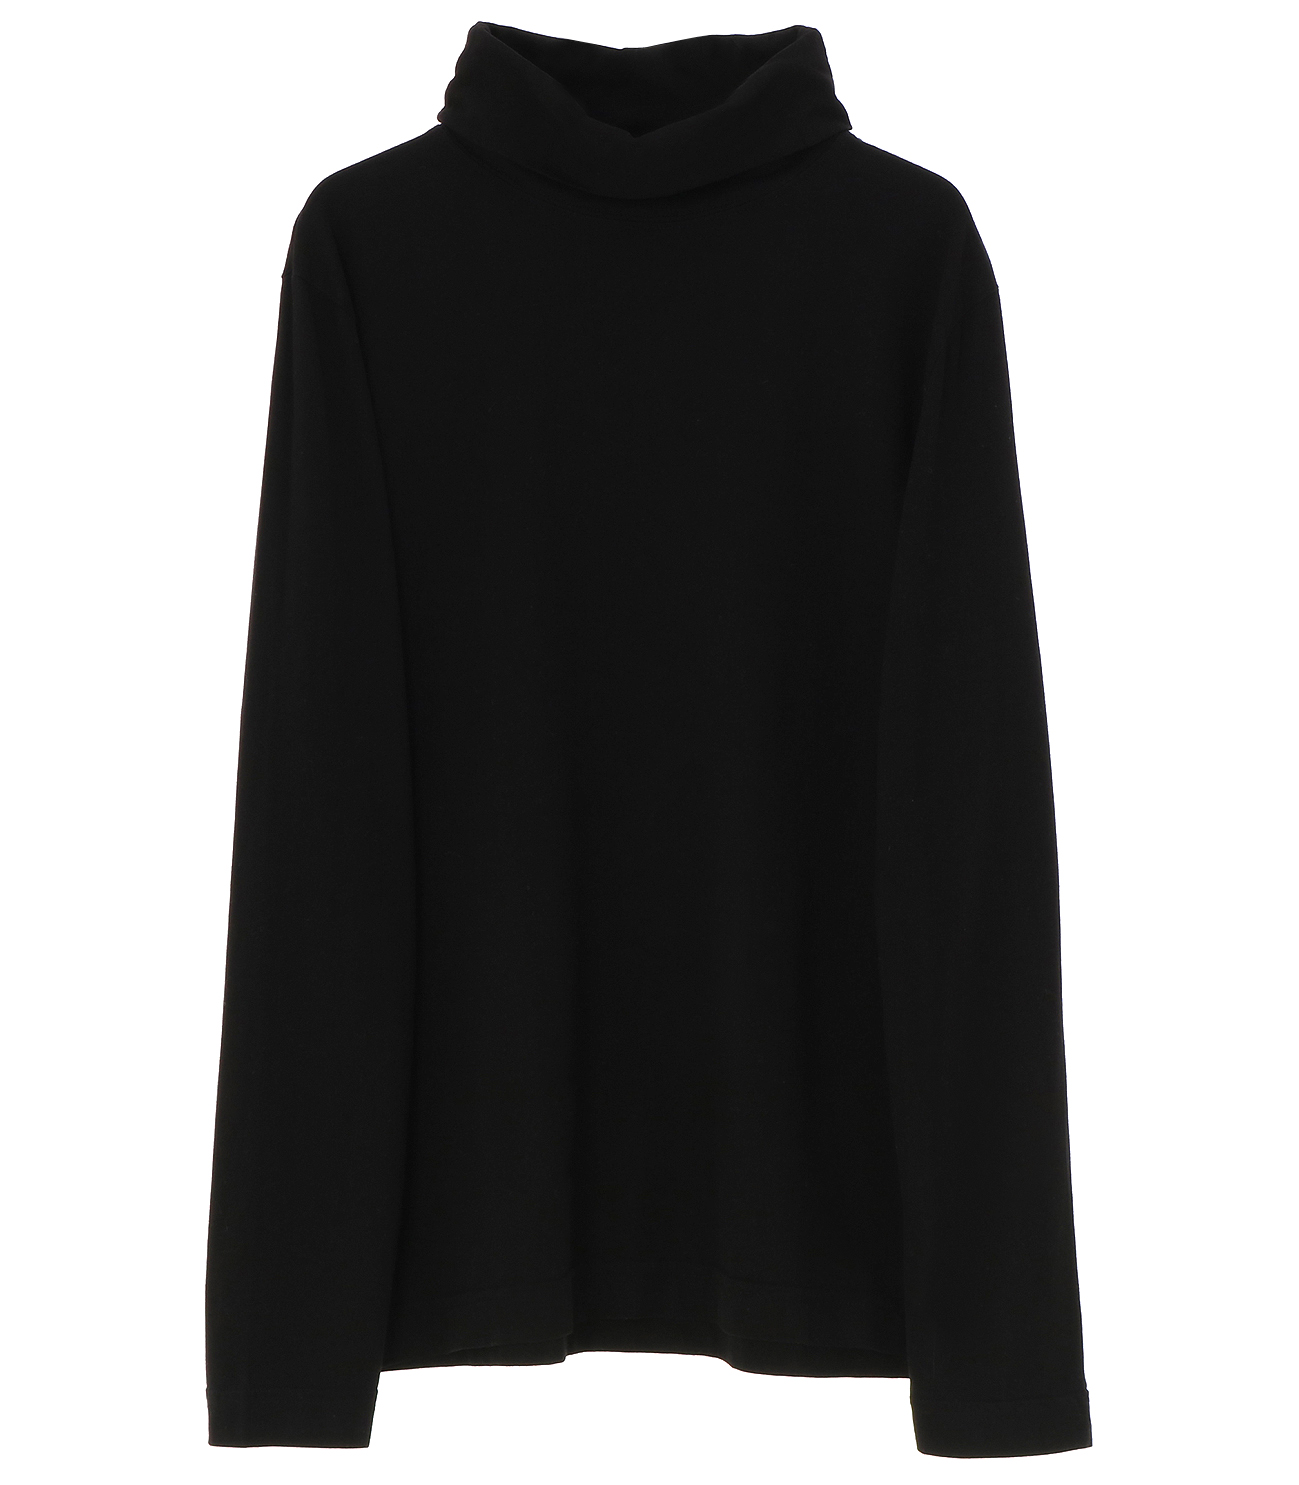 Men's sanded jersey turtleneck 詳細画像 black 1